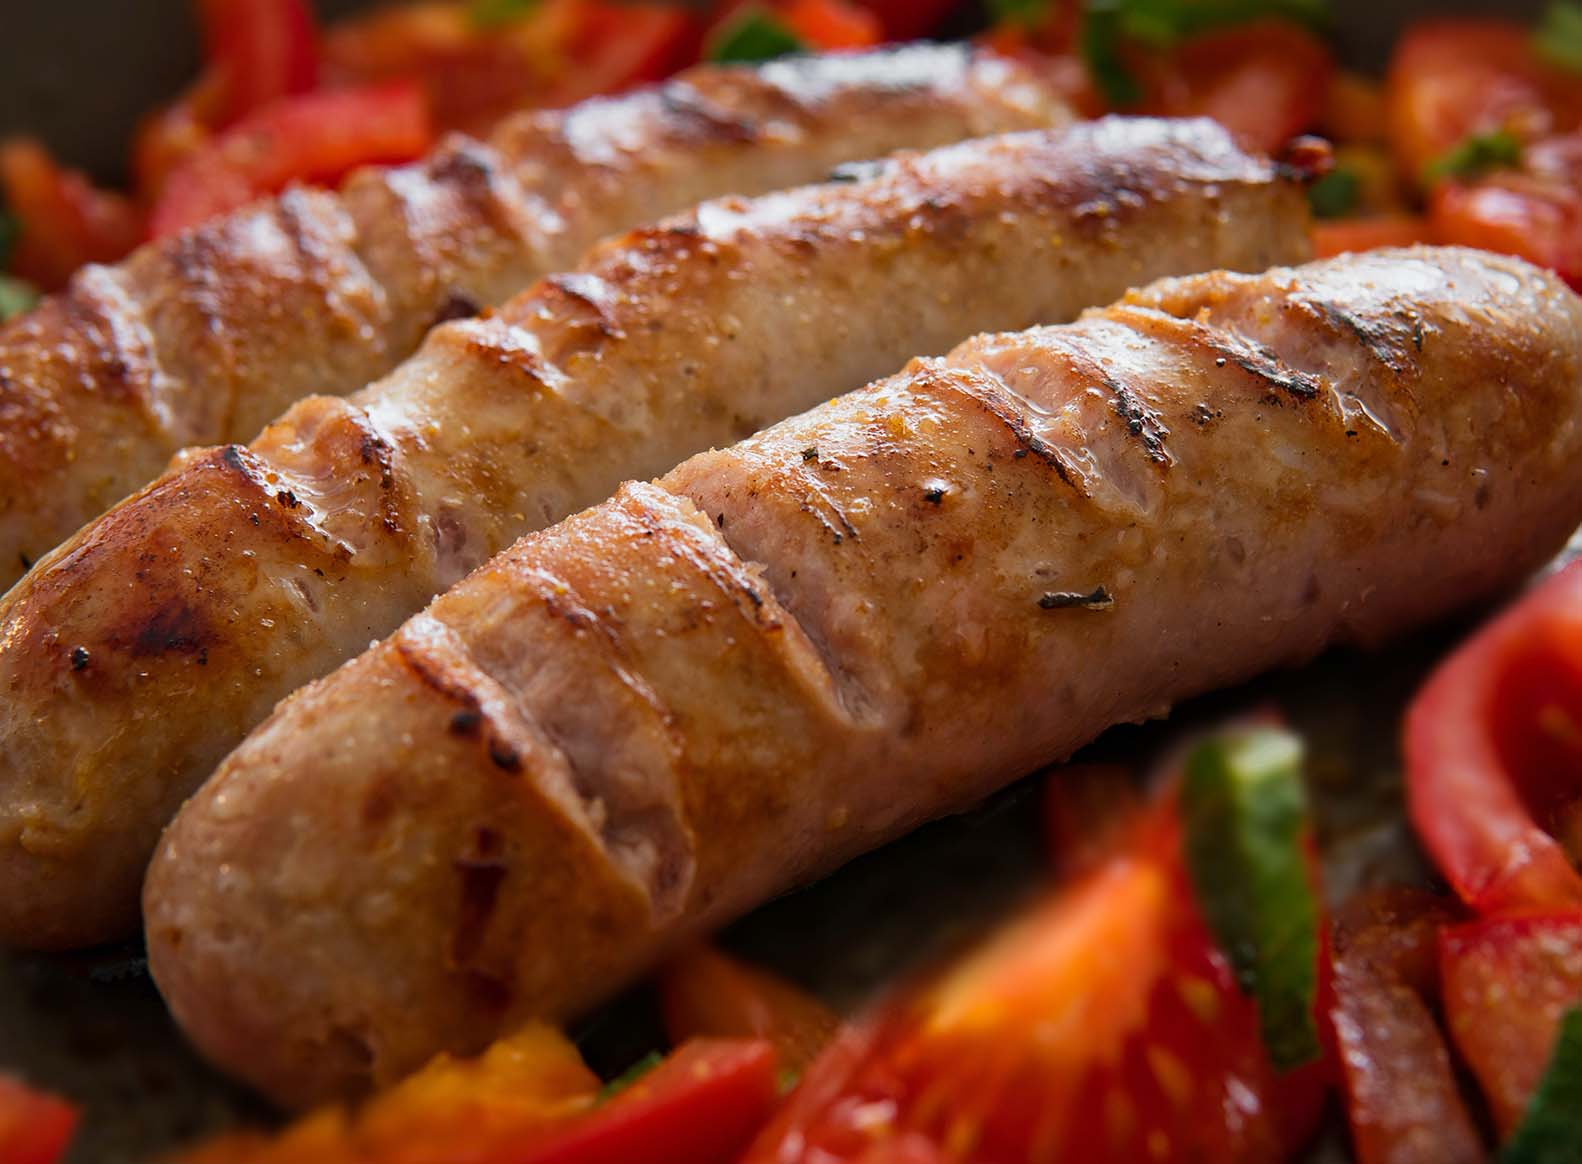 sausages and tomato on a plate